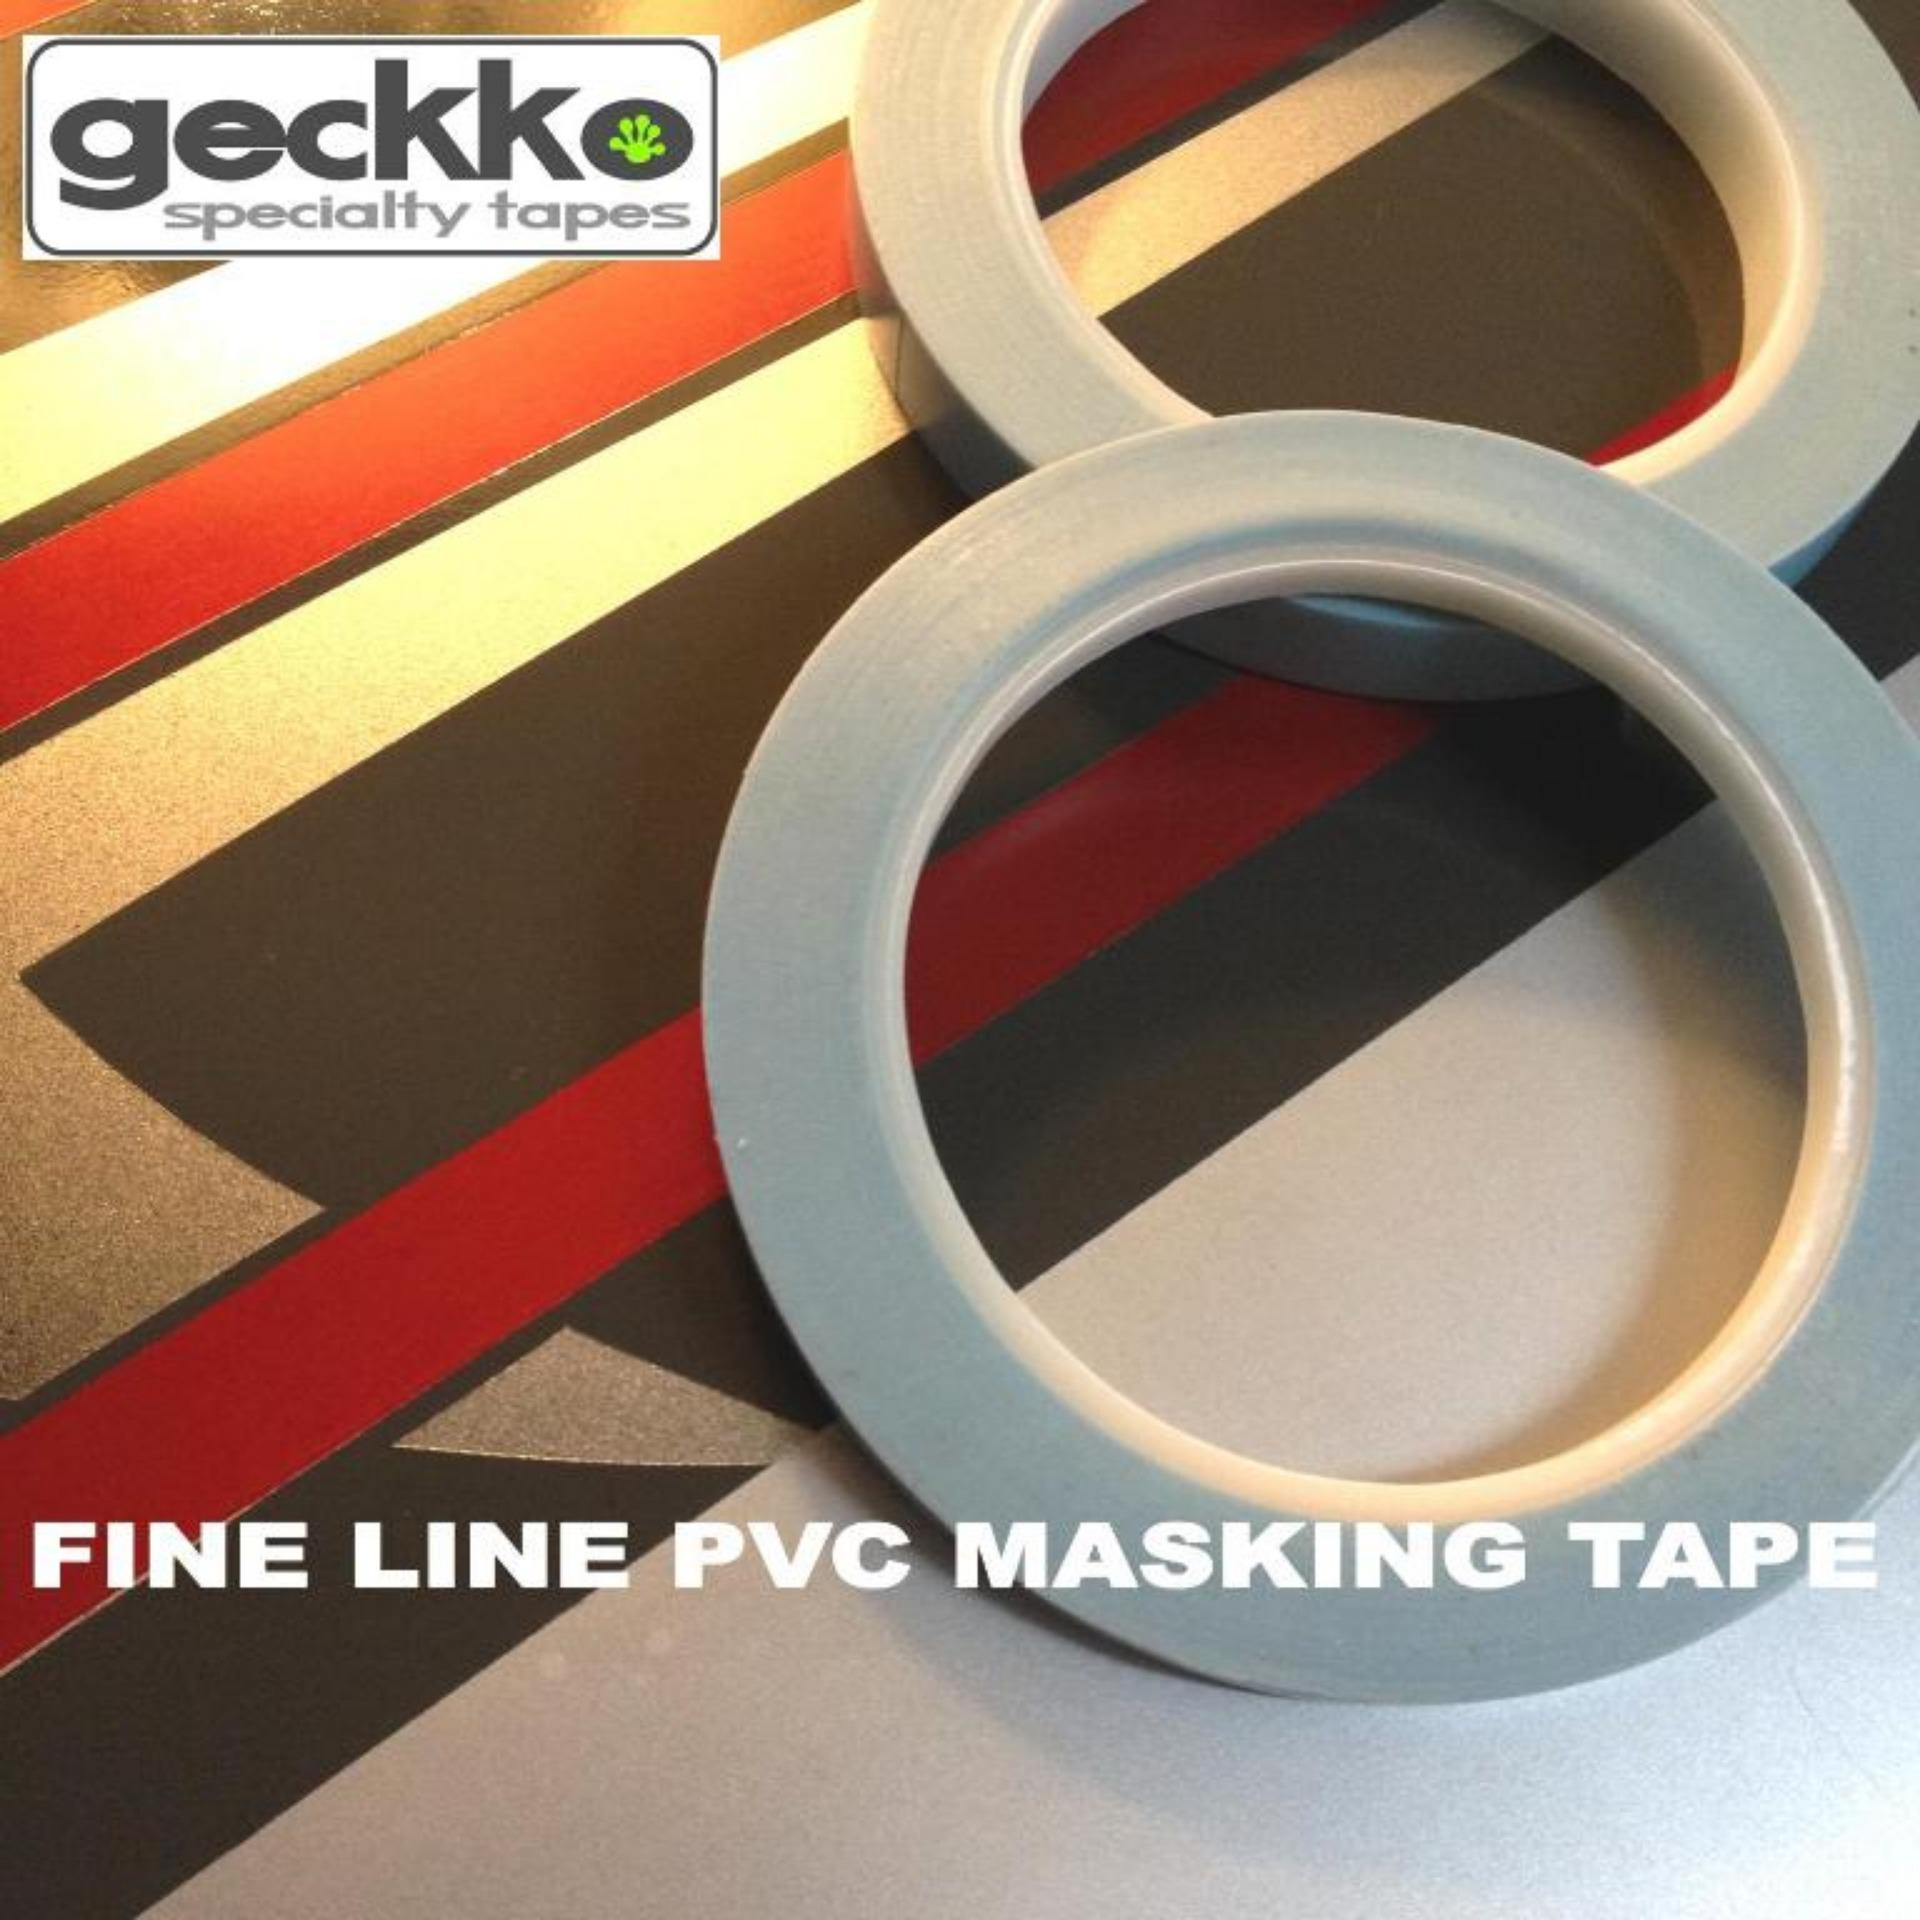 ... Glue Tool Knife Source · FINE LINE PVC MASKING TAPE by Geckko Specialty Tapes PinstripingPin Stripe Graphics Car Decal Car Art